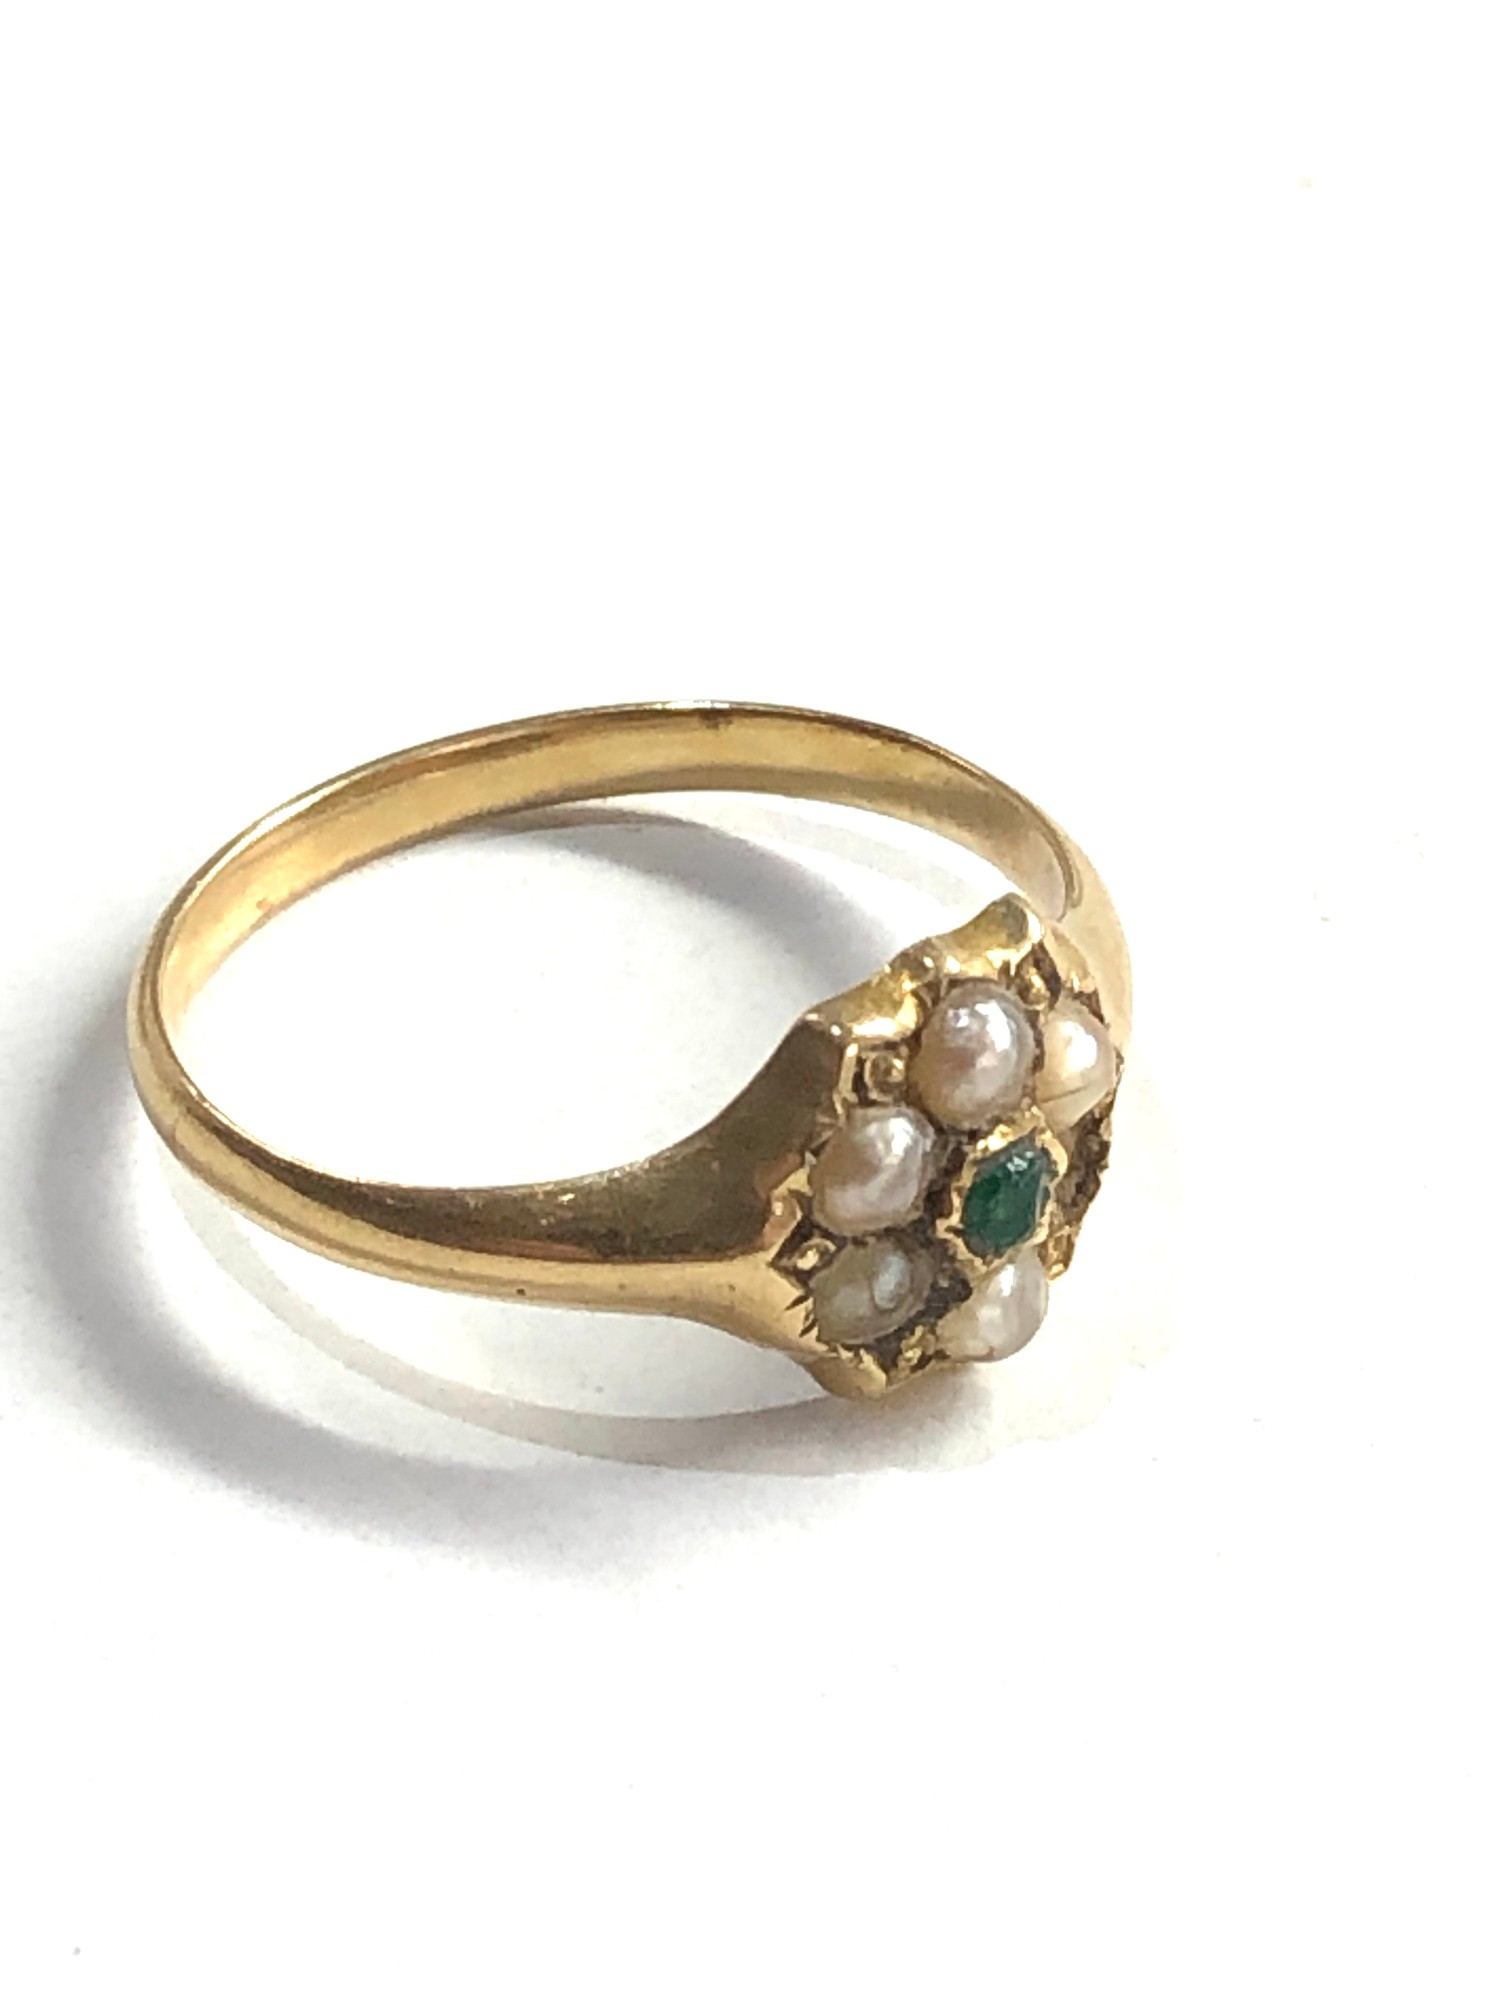 Antique 15ct gold emerald and seed-pearl ring missing pearl weight 2g xrt as 15ct gold - Image 2 of 4